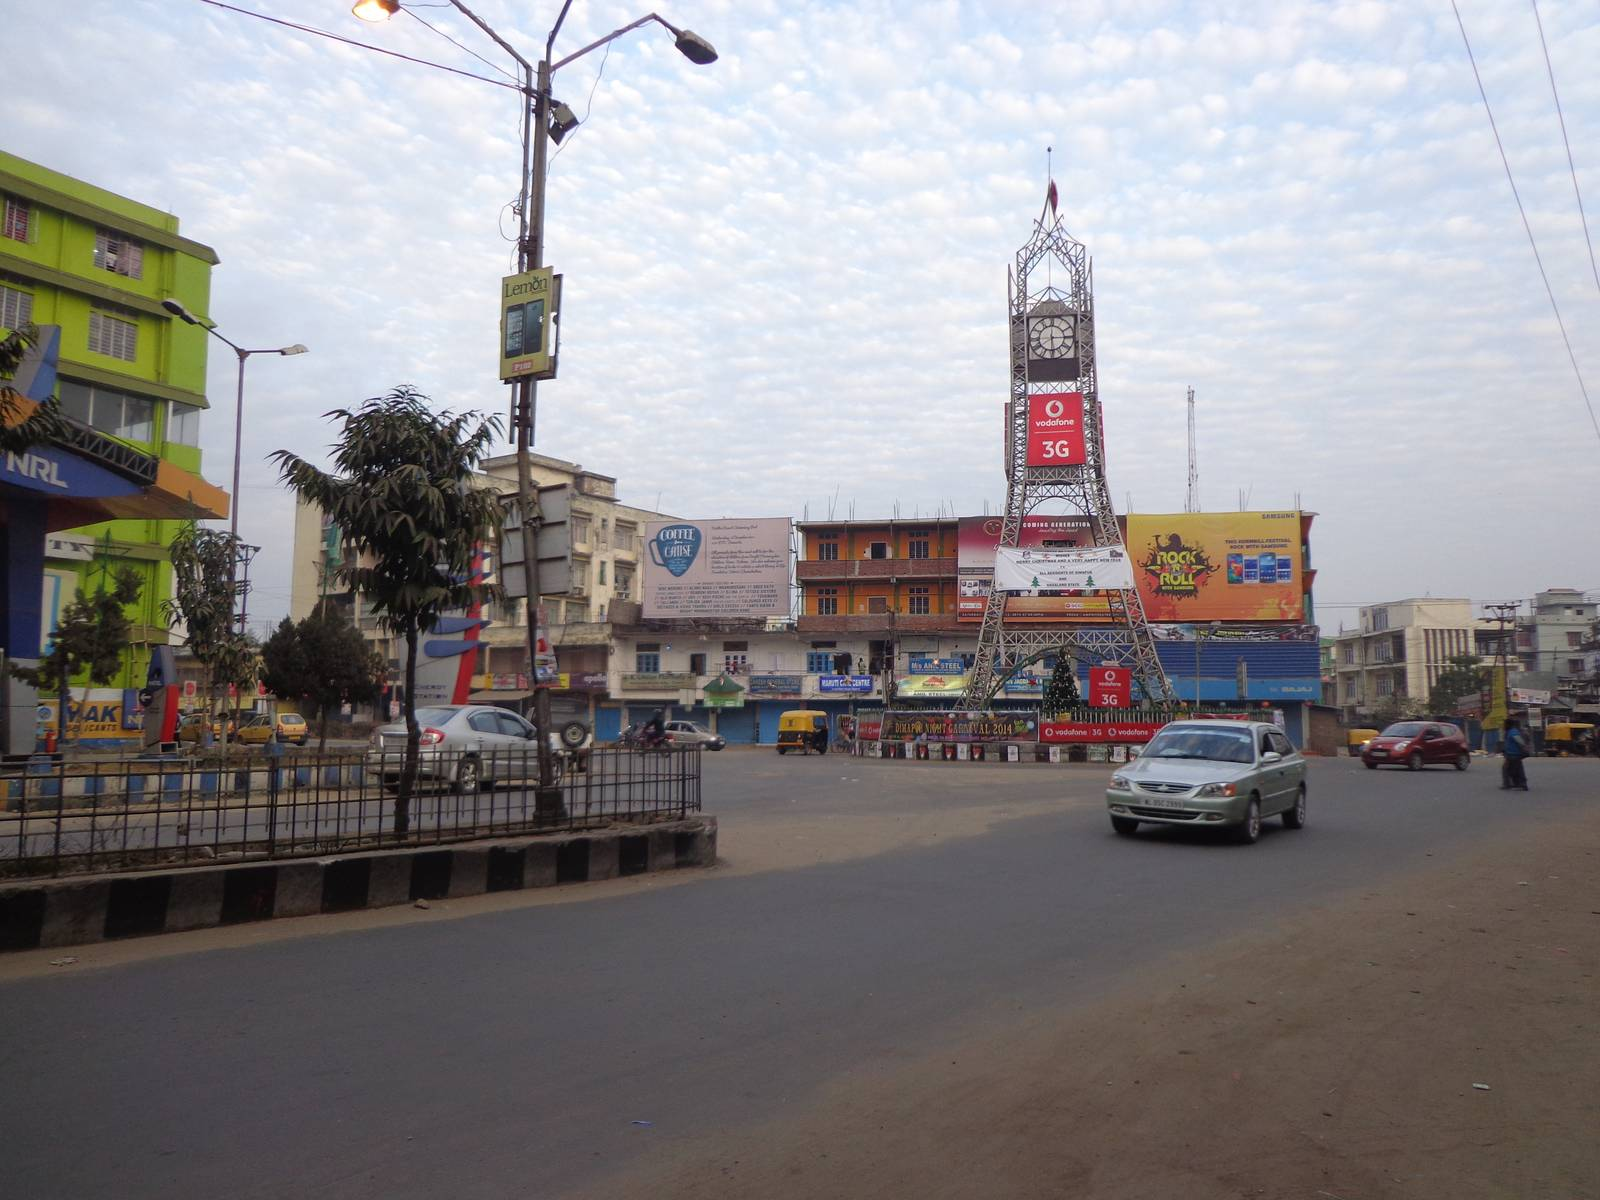 Dimapur city tower area looks like a ghost town on a Sunday. All the shops were closed.